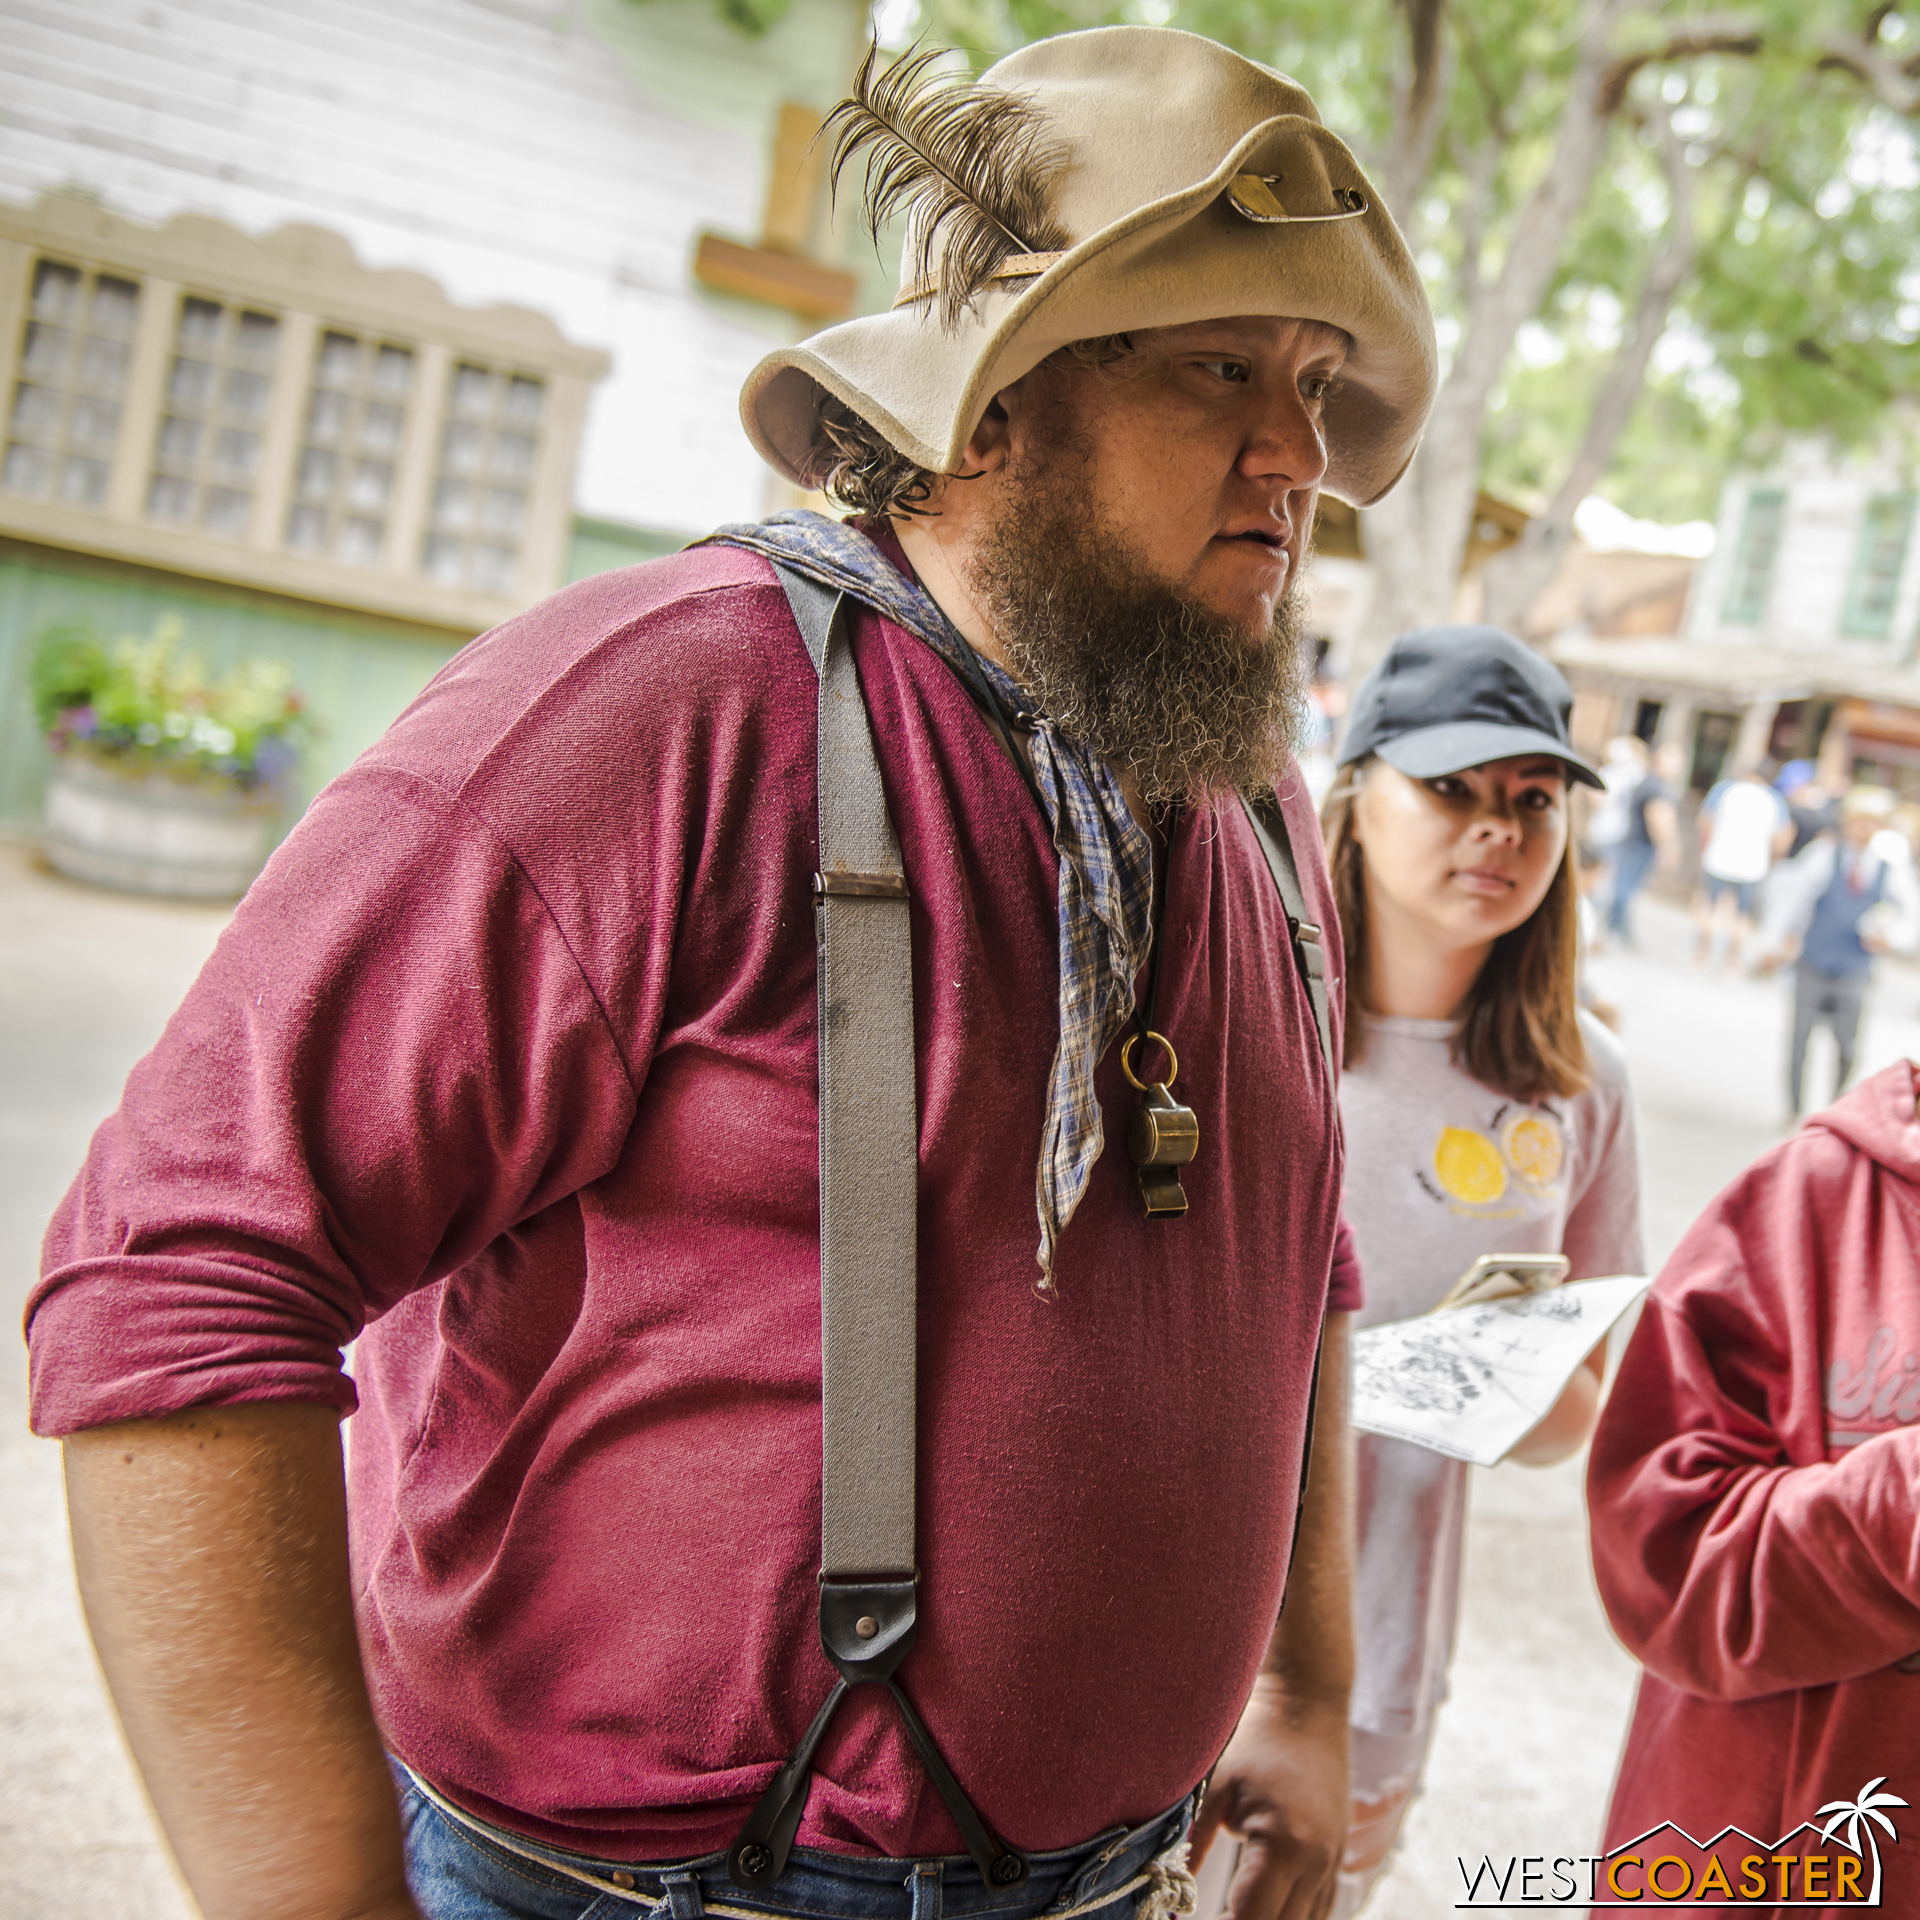 Flint the prospector was getting his gold stolen all day.